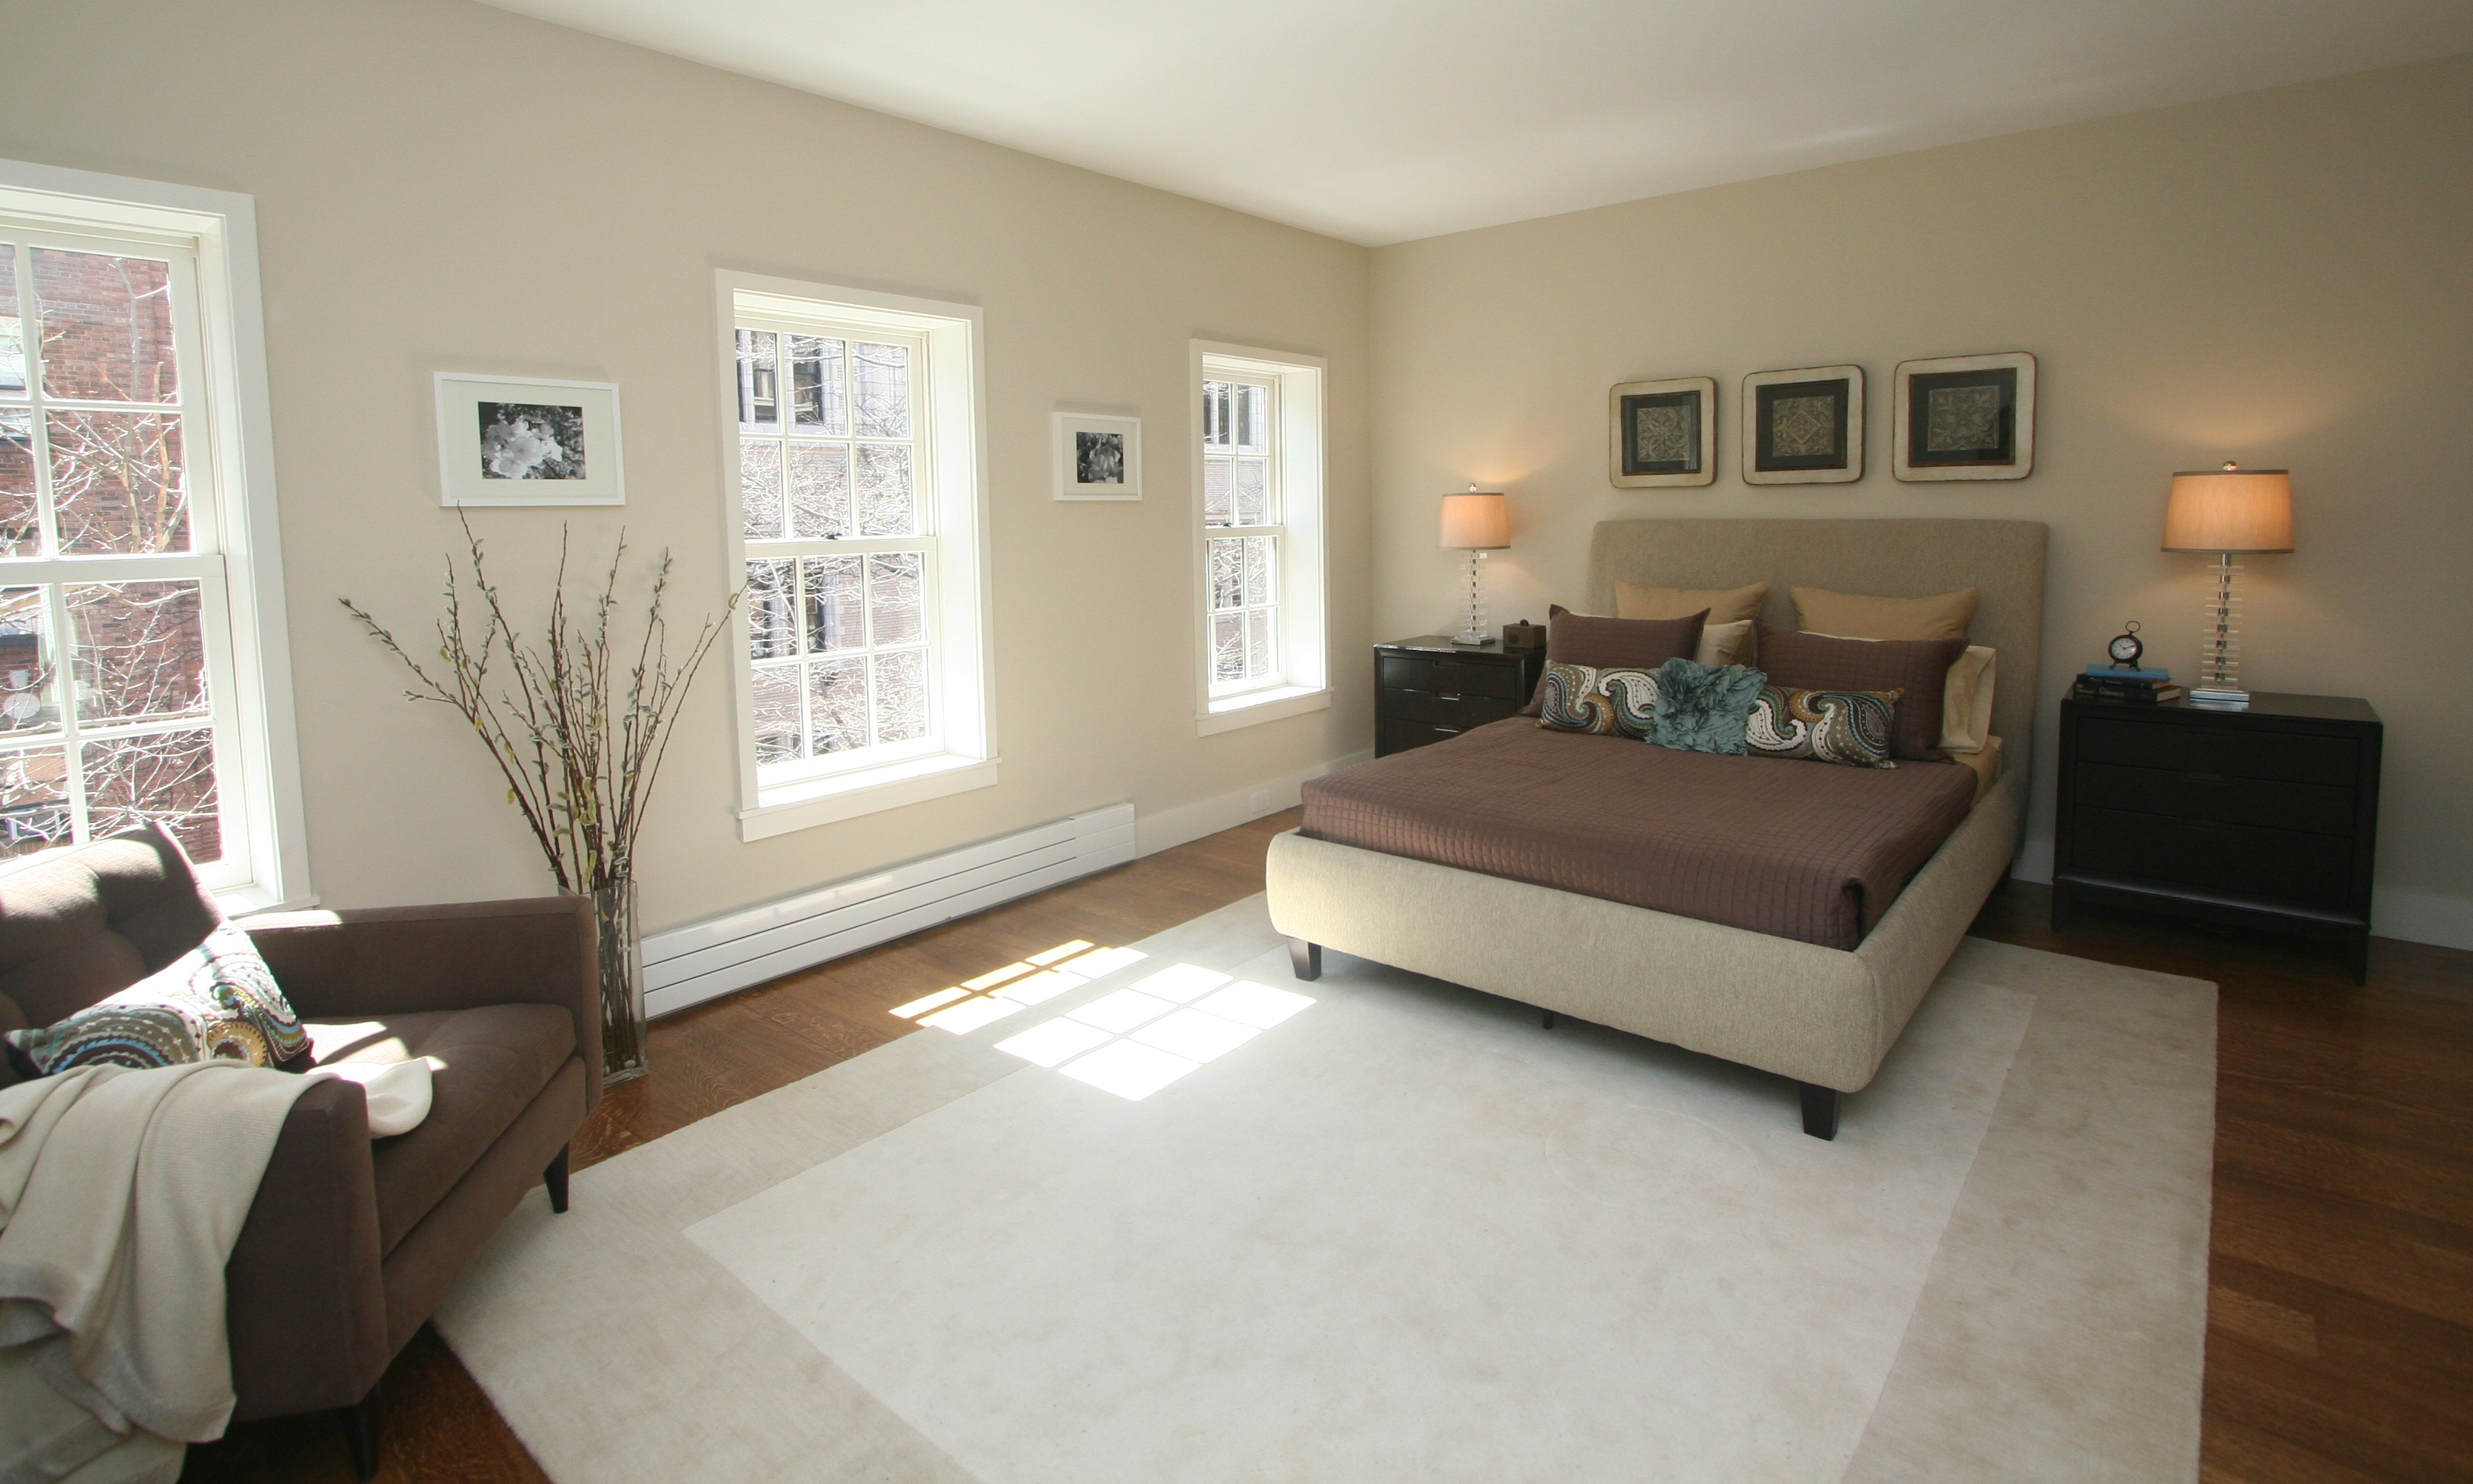 Taking home staging to the next level lifestyle merchandising Master bedroom home staging